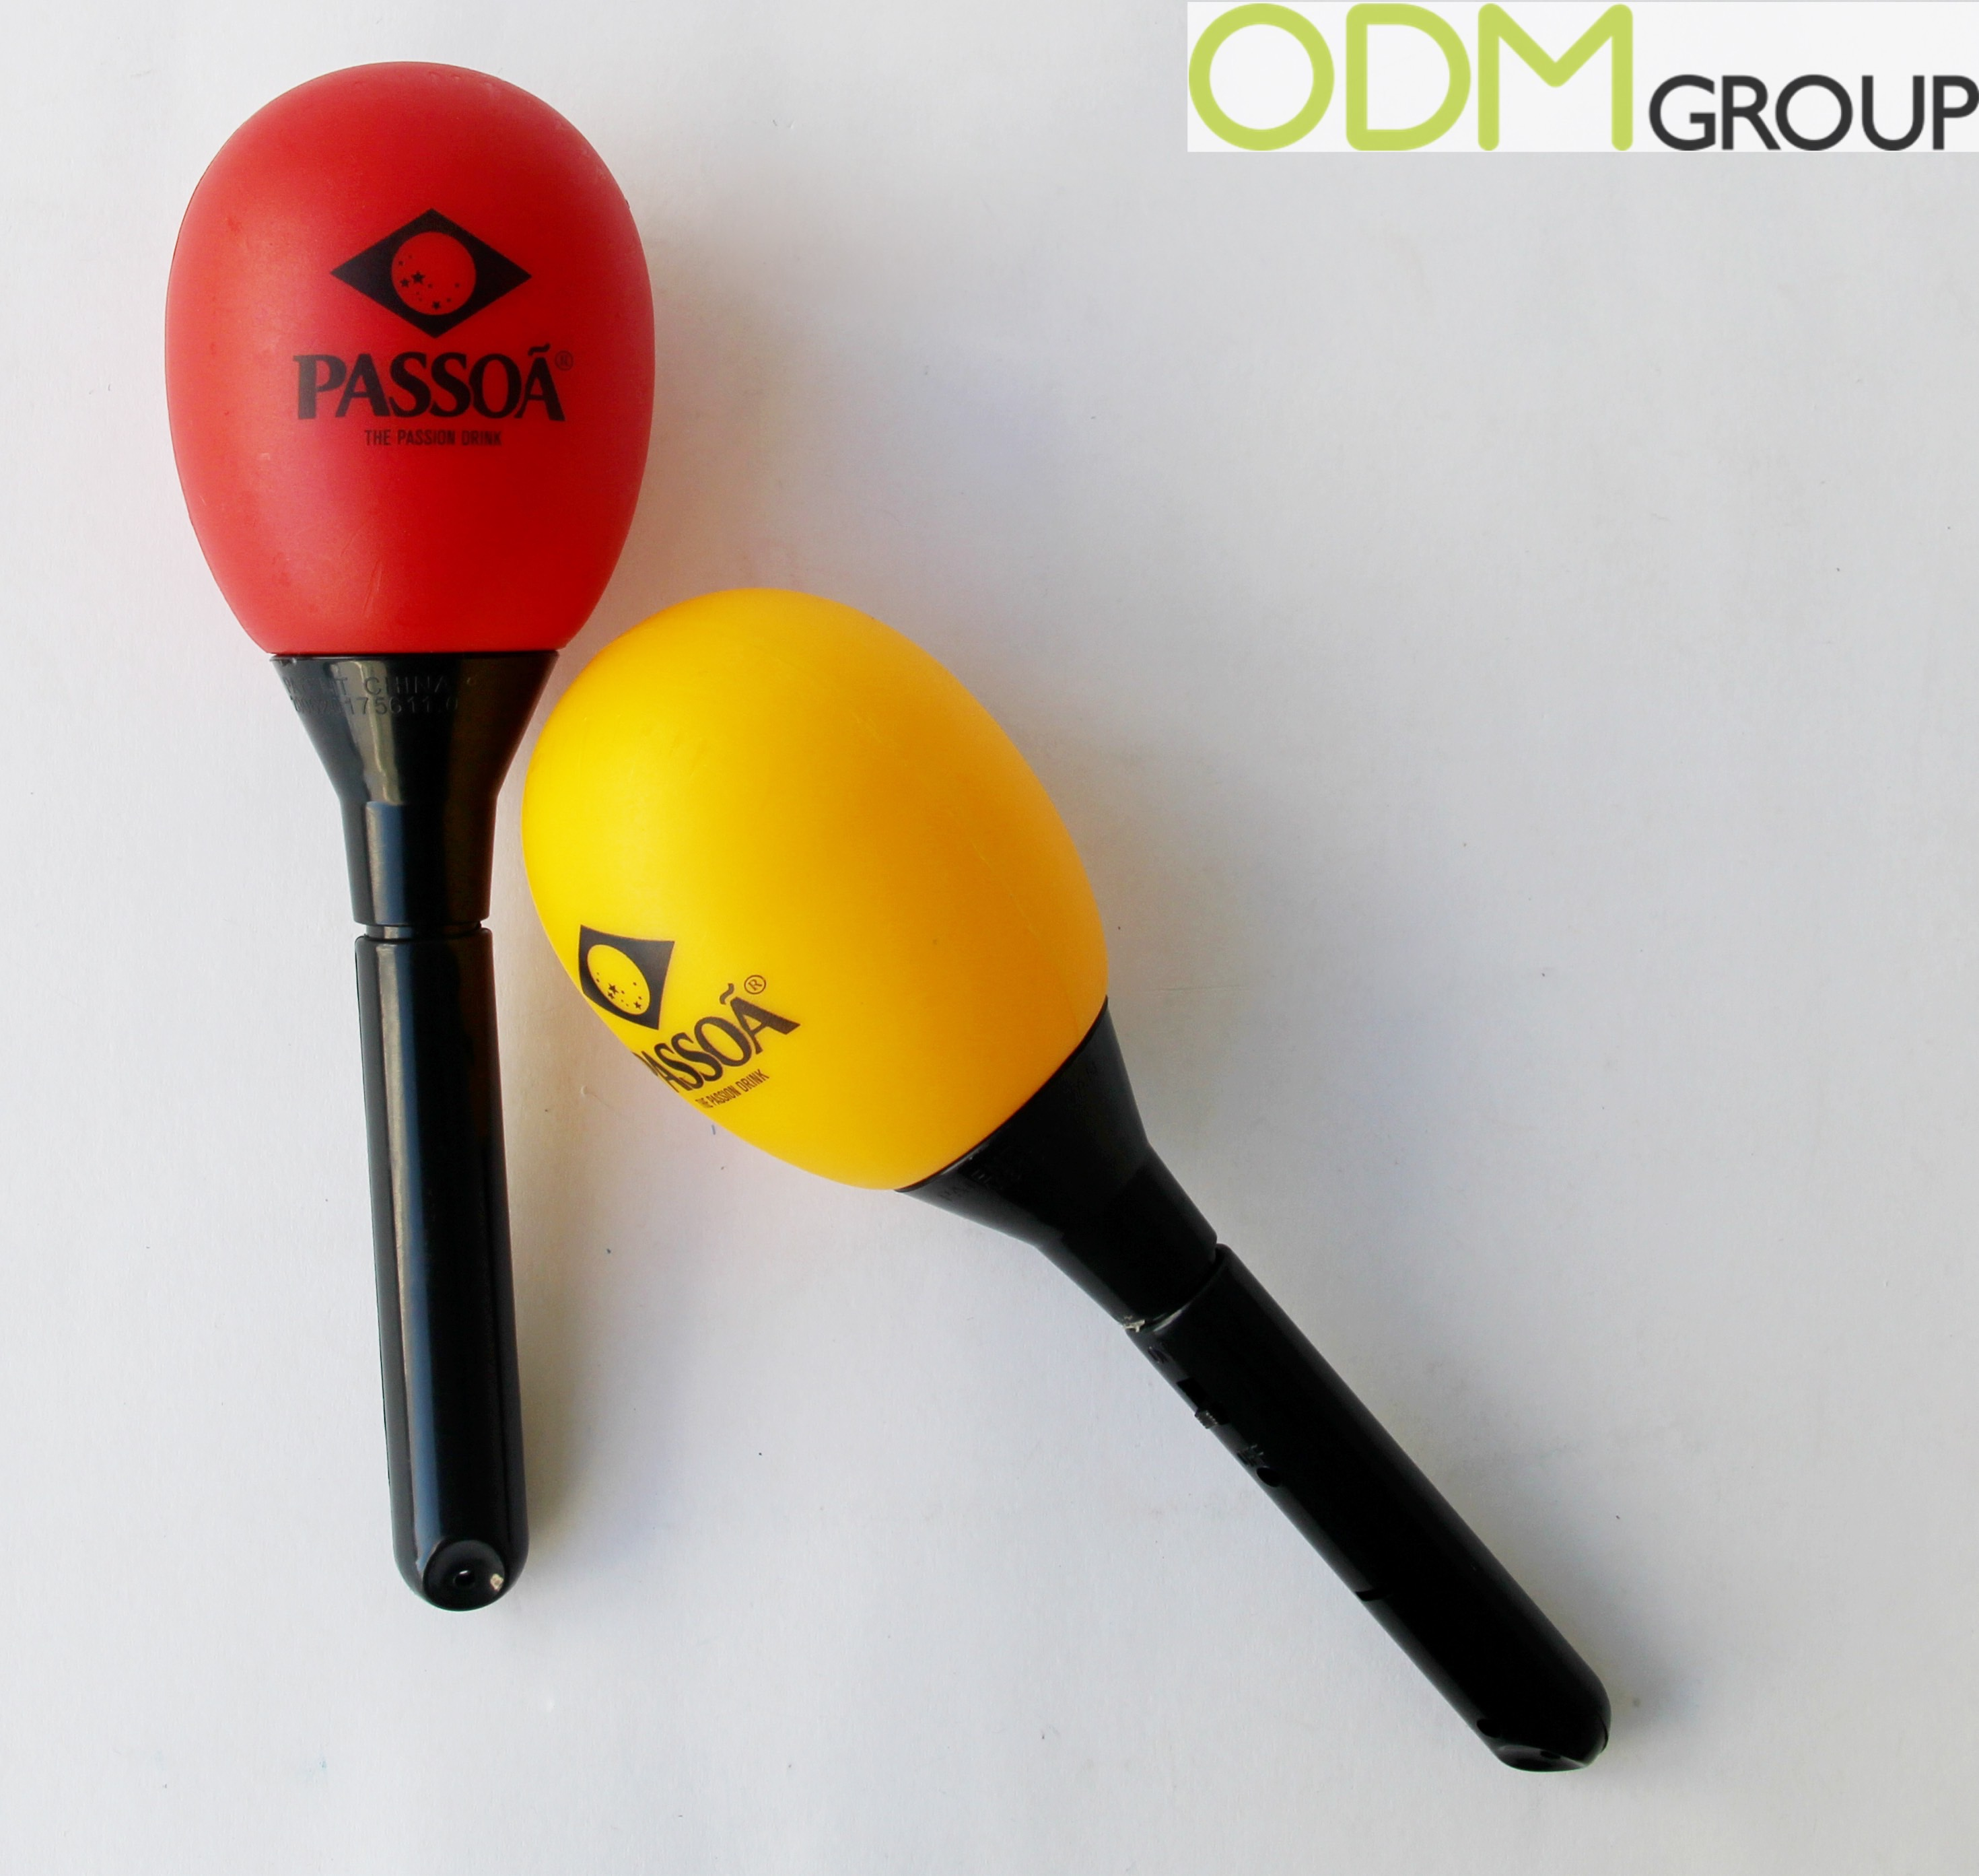 Promotional Idea for Party - Custom LED maracas by Passoa